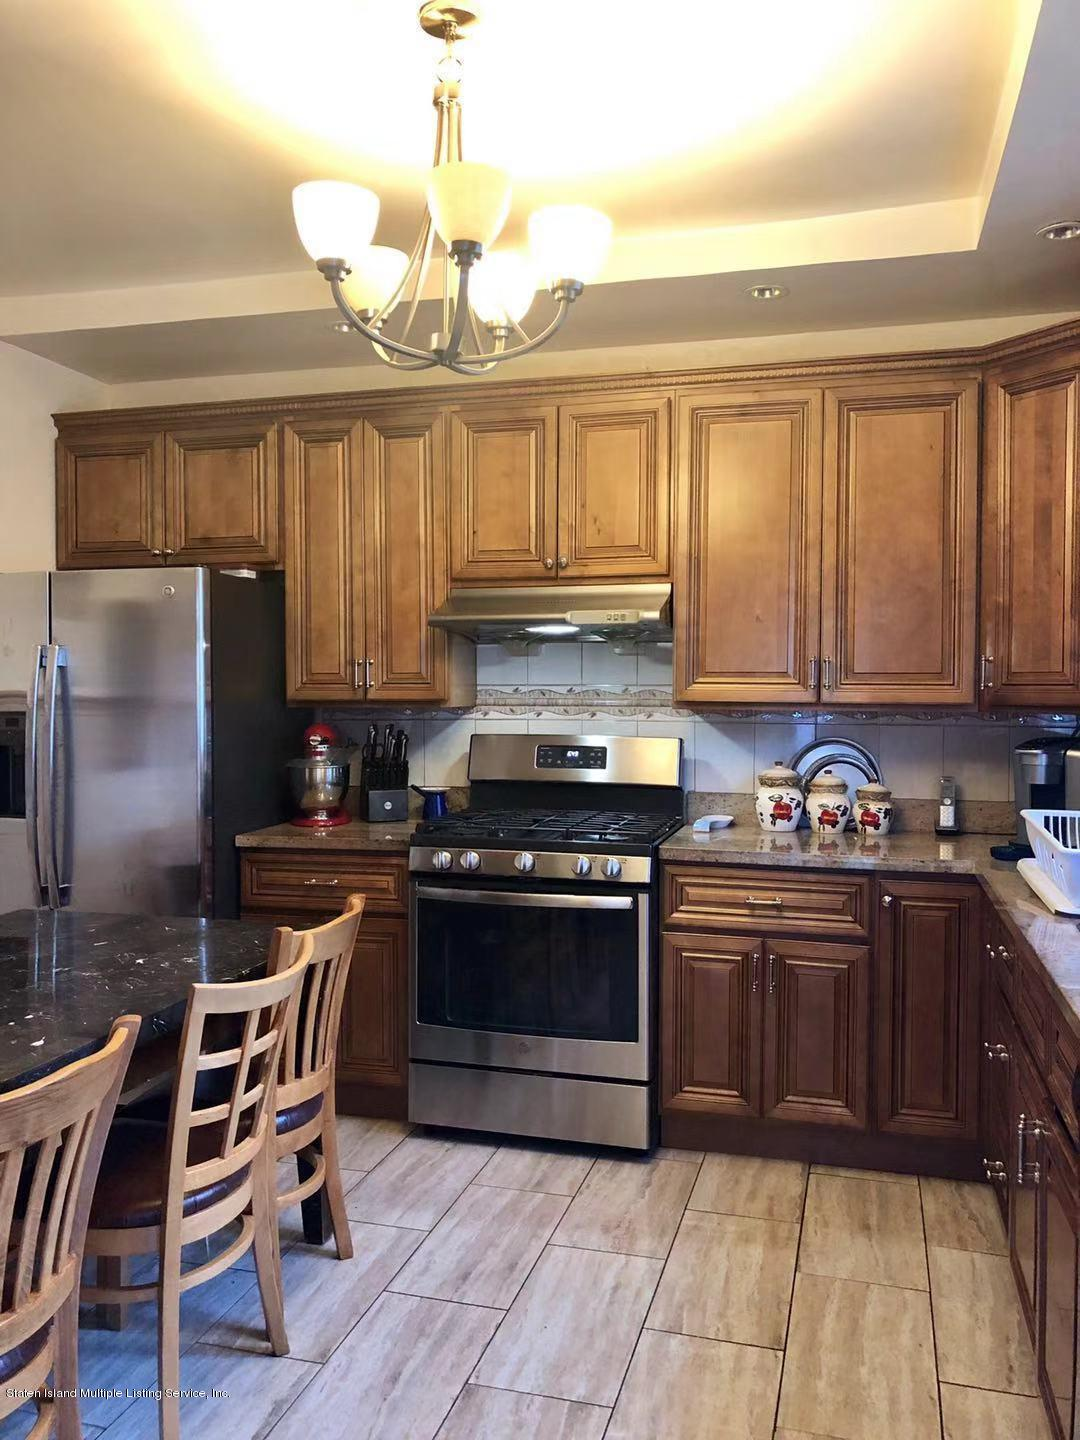 Single Family - Detached 1123 Forest Avenue  Staten Island, NY 10310, MLS-1131376-5